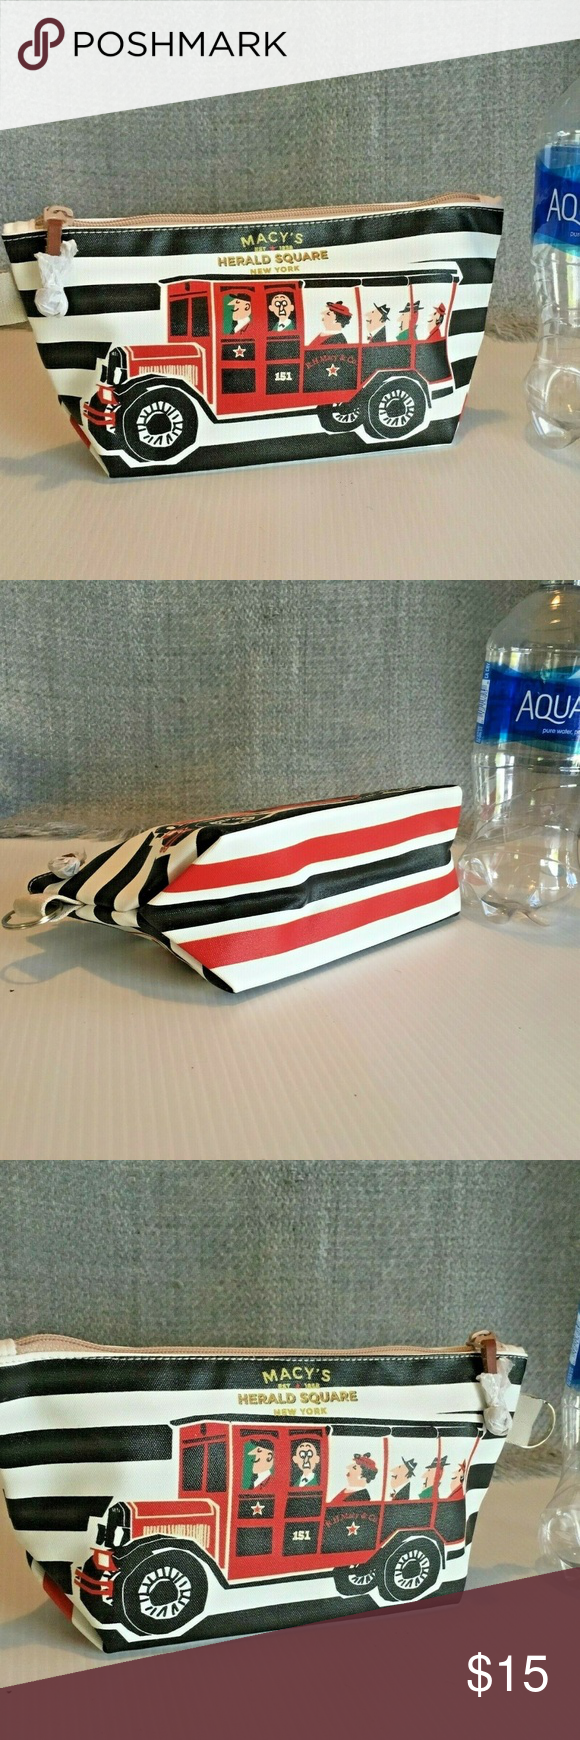 Macy's Herald Square NY Clutch Cosmetic Pouch Macy's